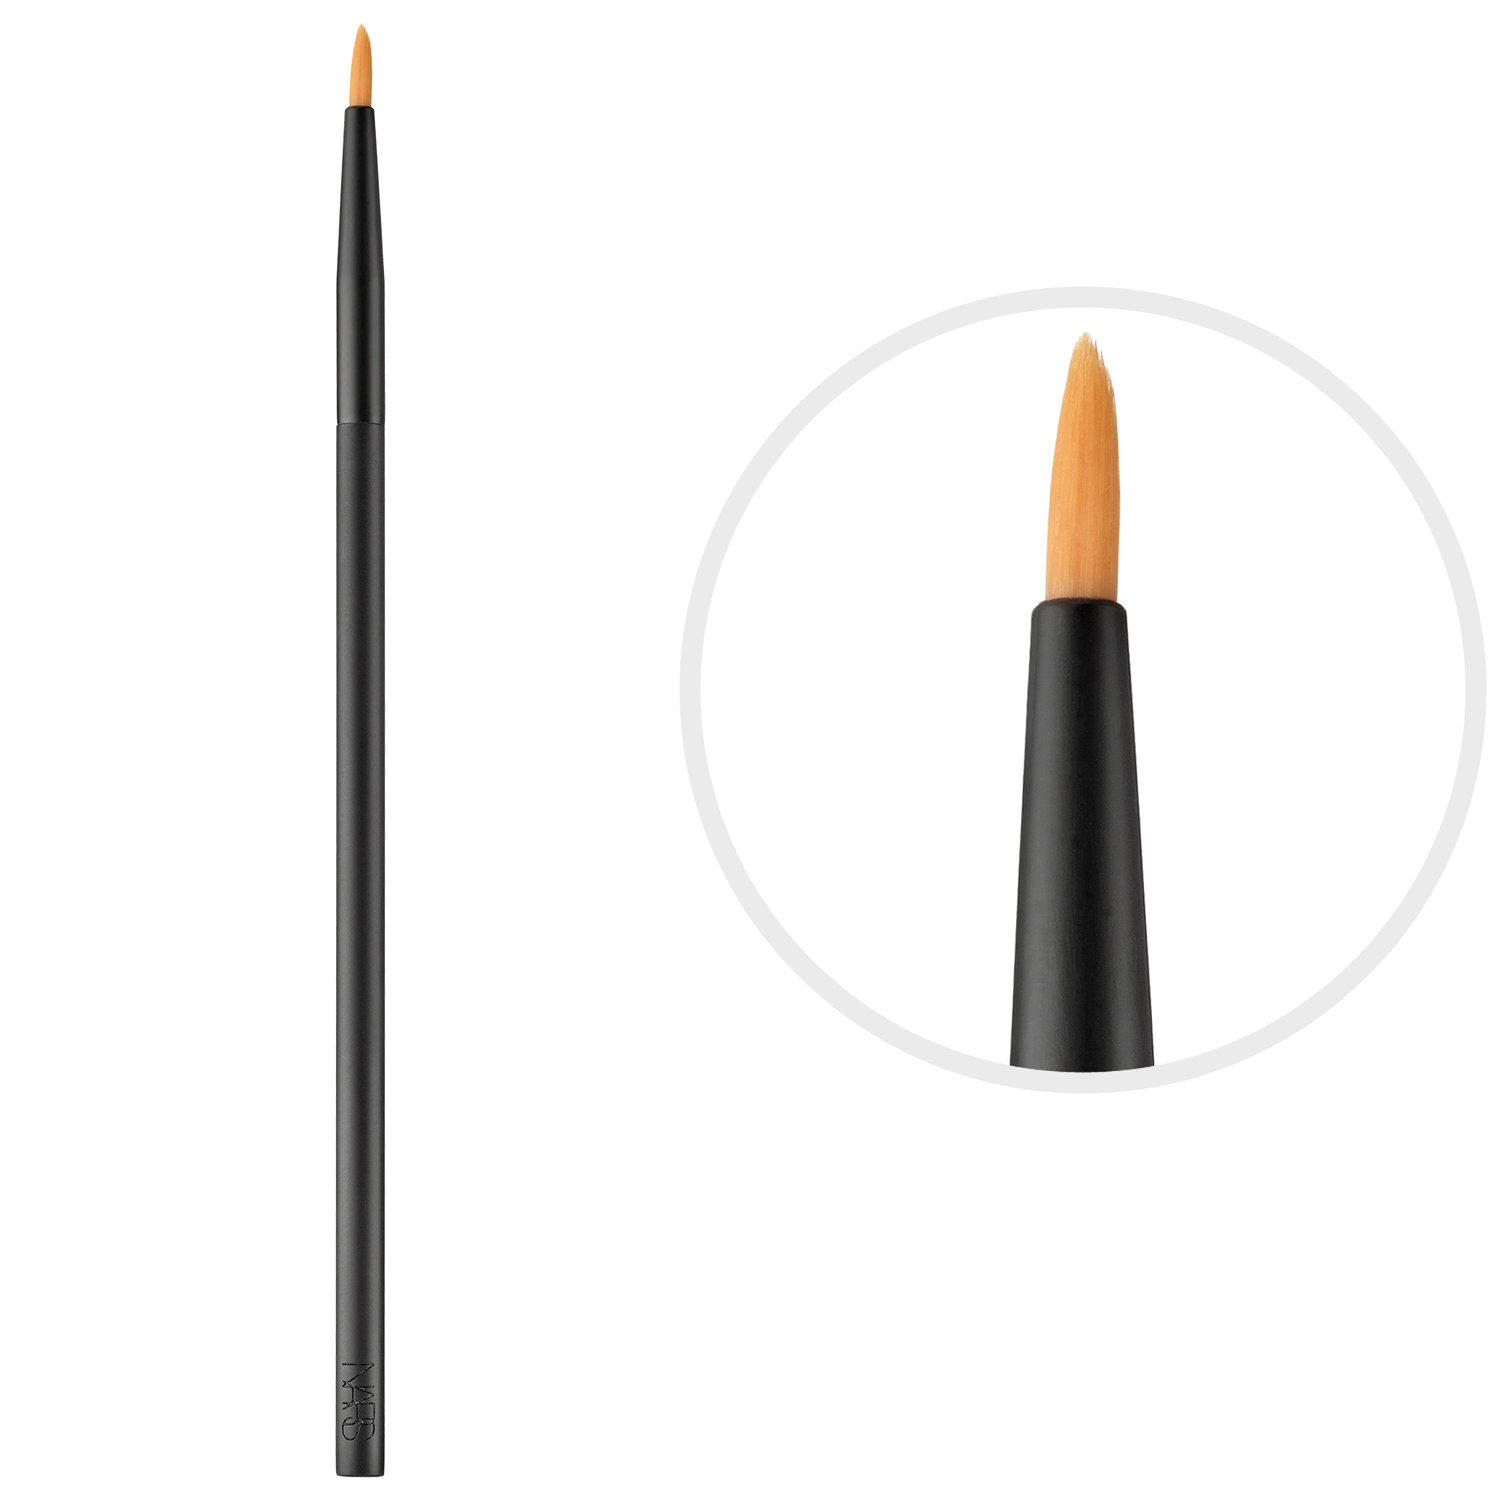 NARS Precision Blending Brush 13